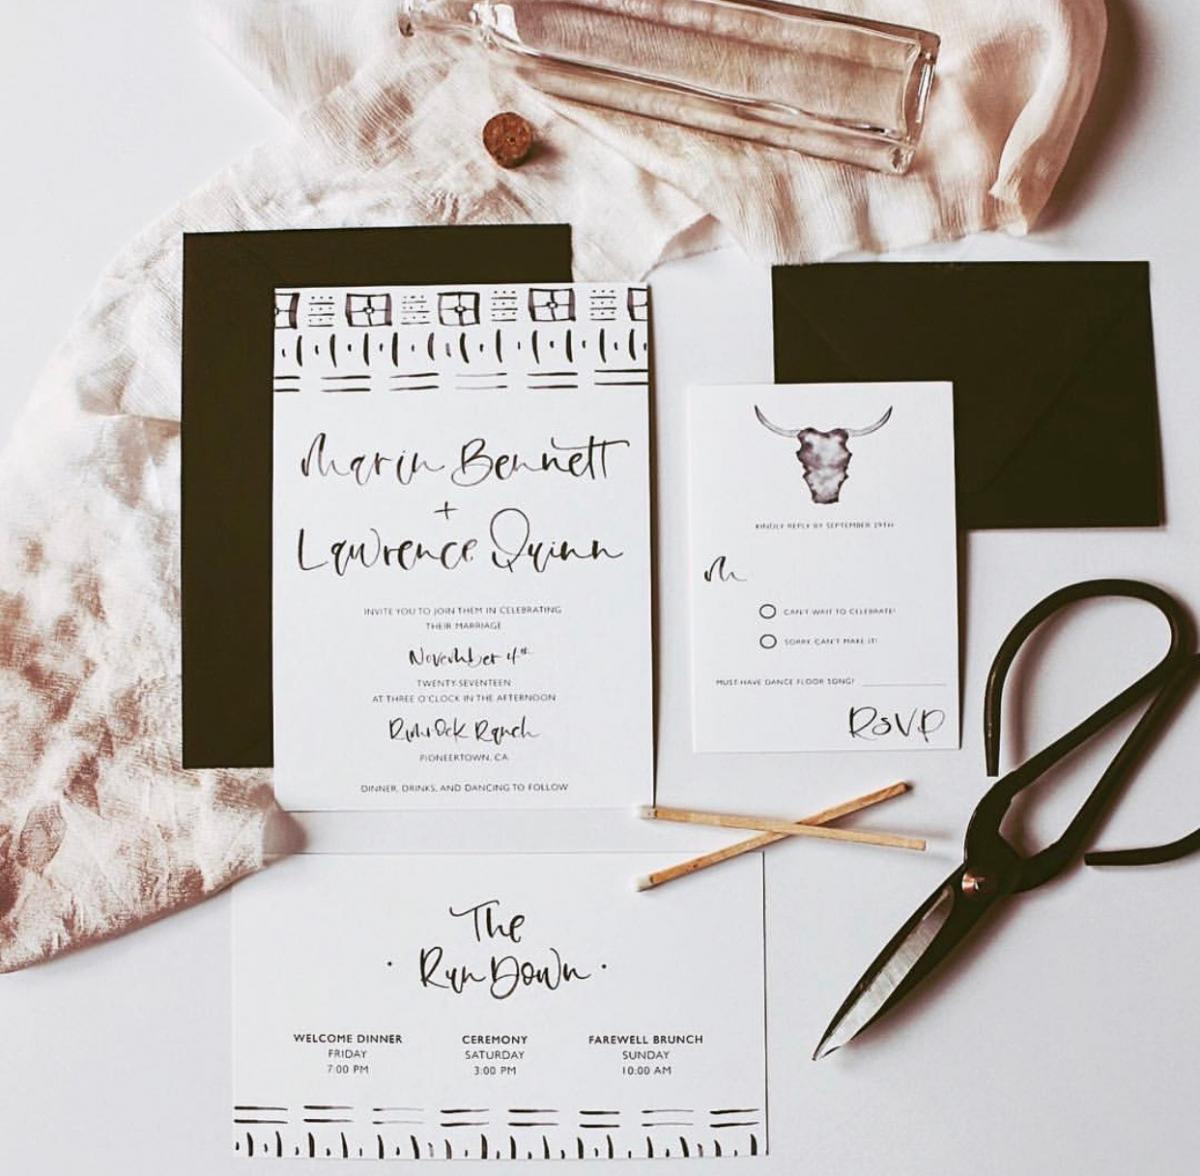 Invitation by Pink + Peach